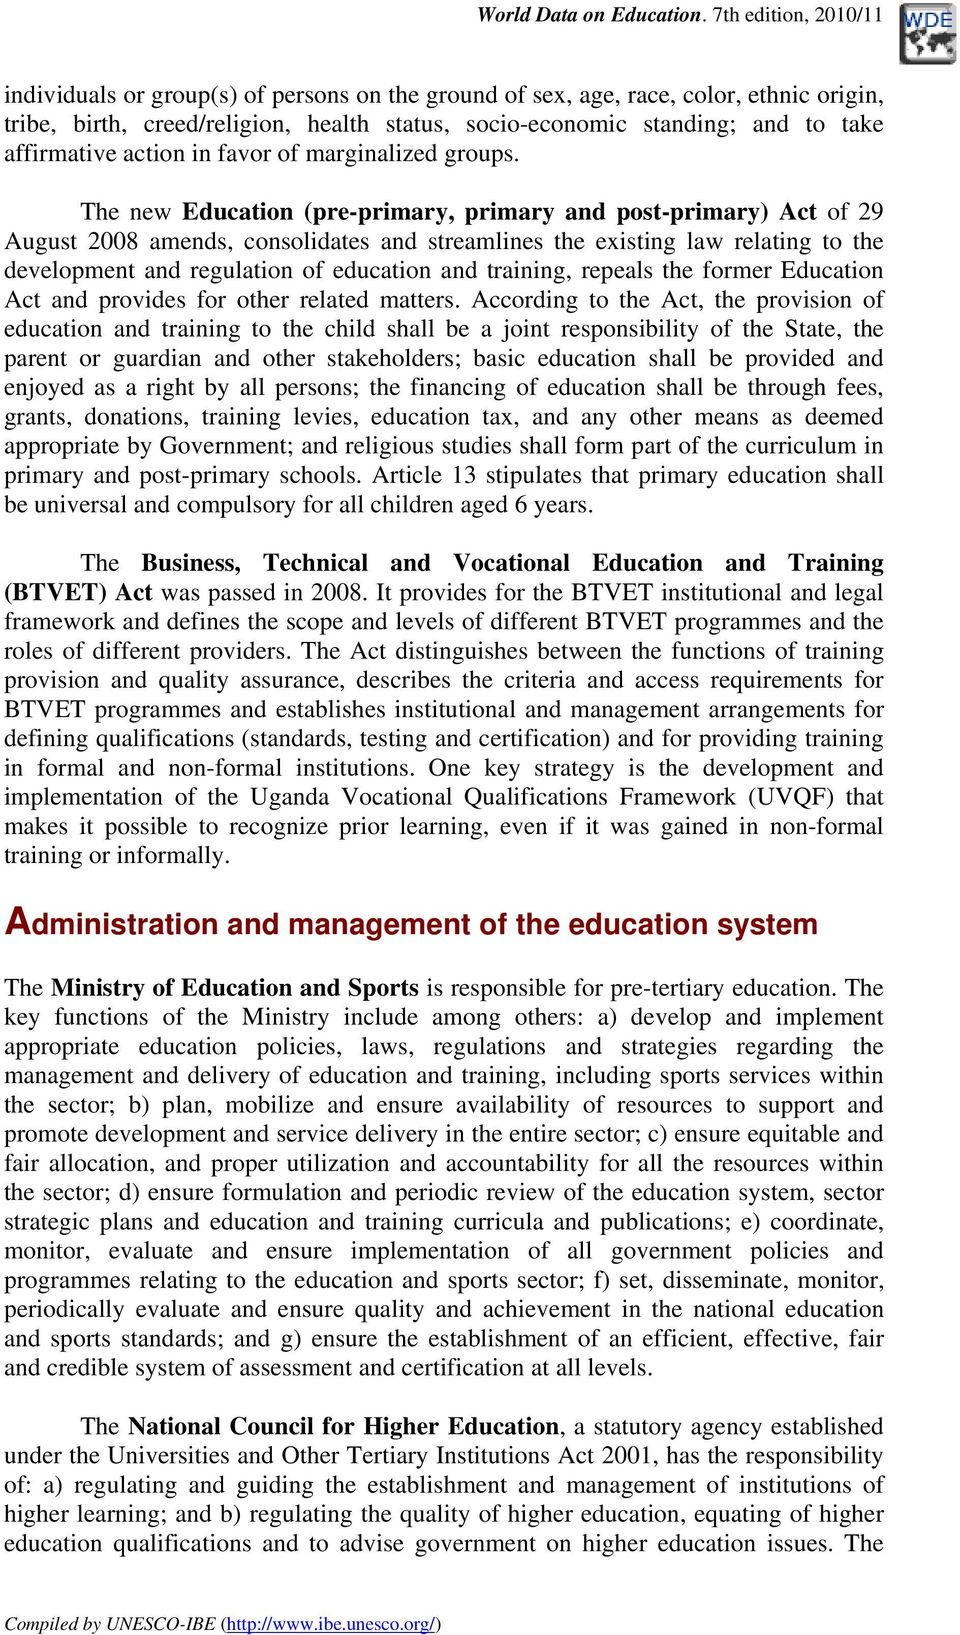 The new Education (pre-primary, primary and post-primary) Act of 29 August 2008 amends, consolidates and streamlines the existing law relating to the development and regulation of education and